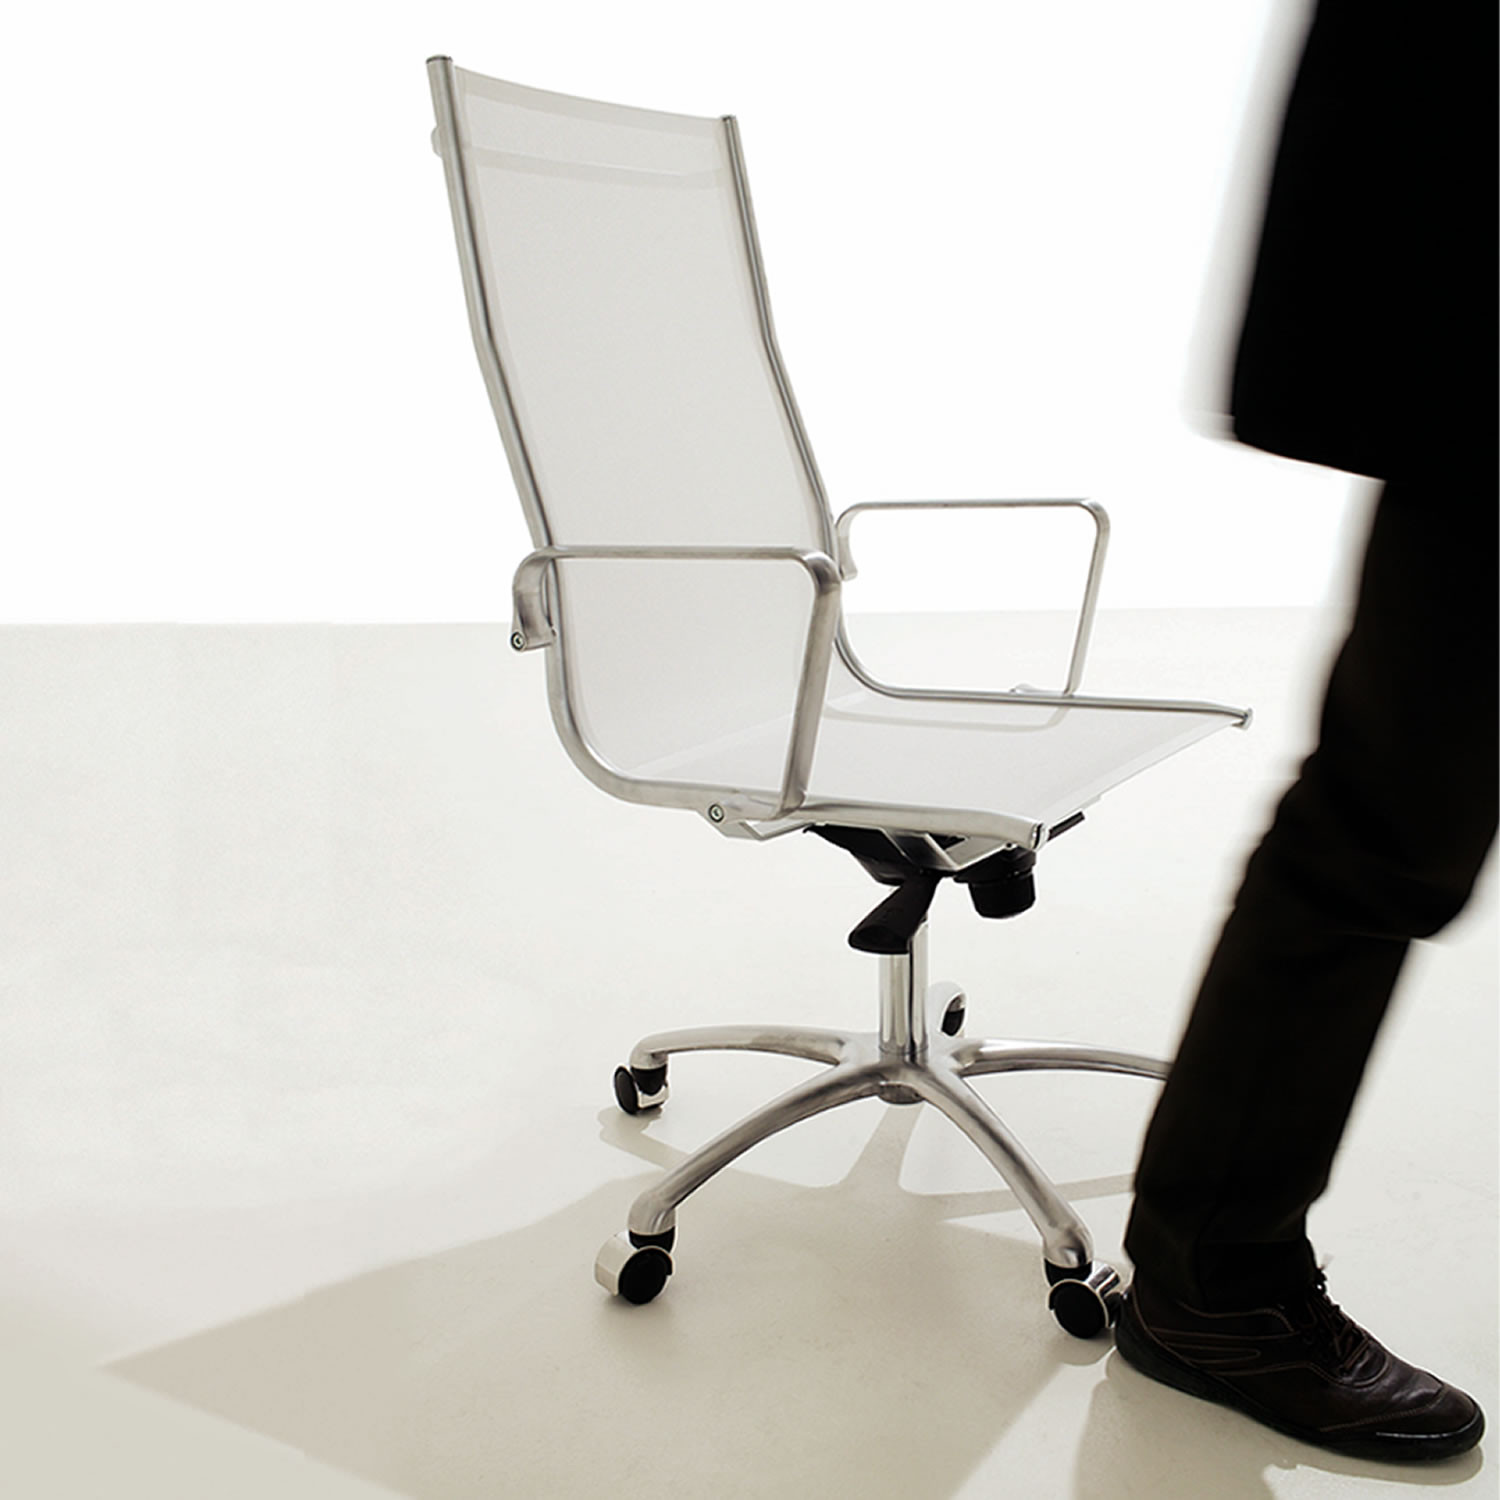 Light Chair with swivel base